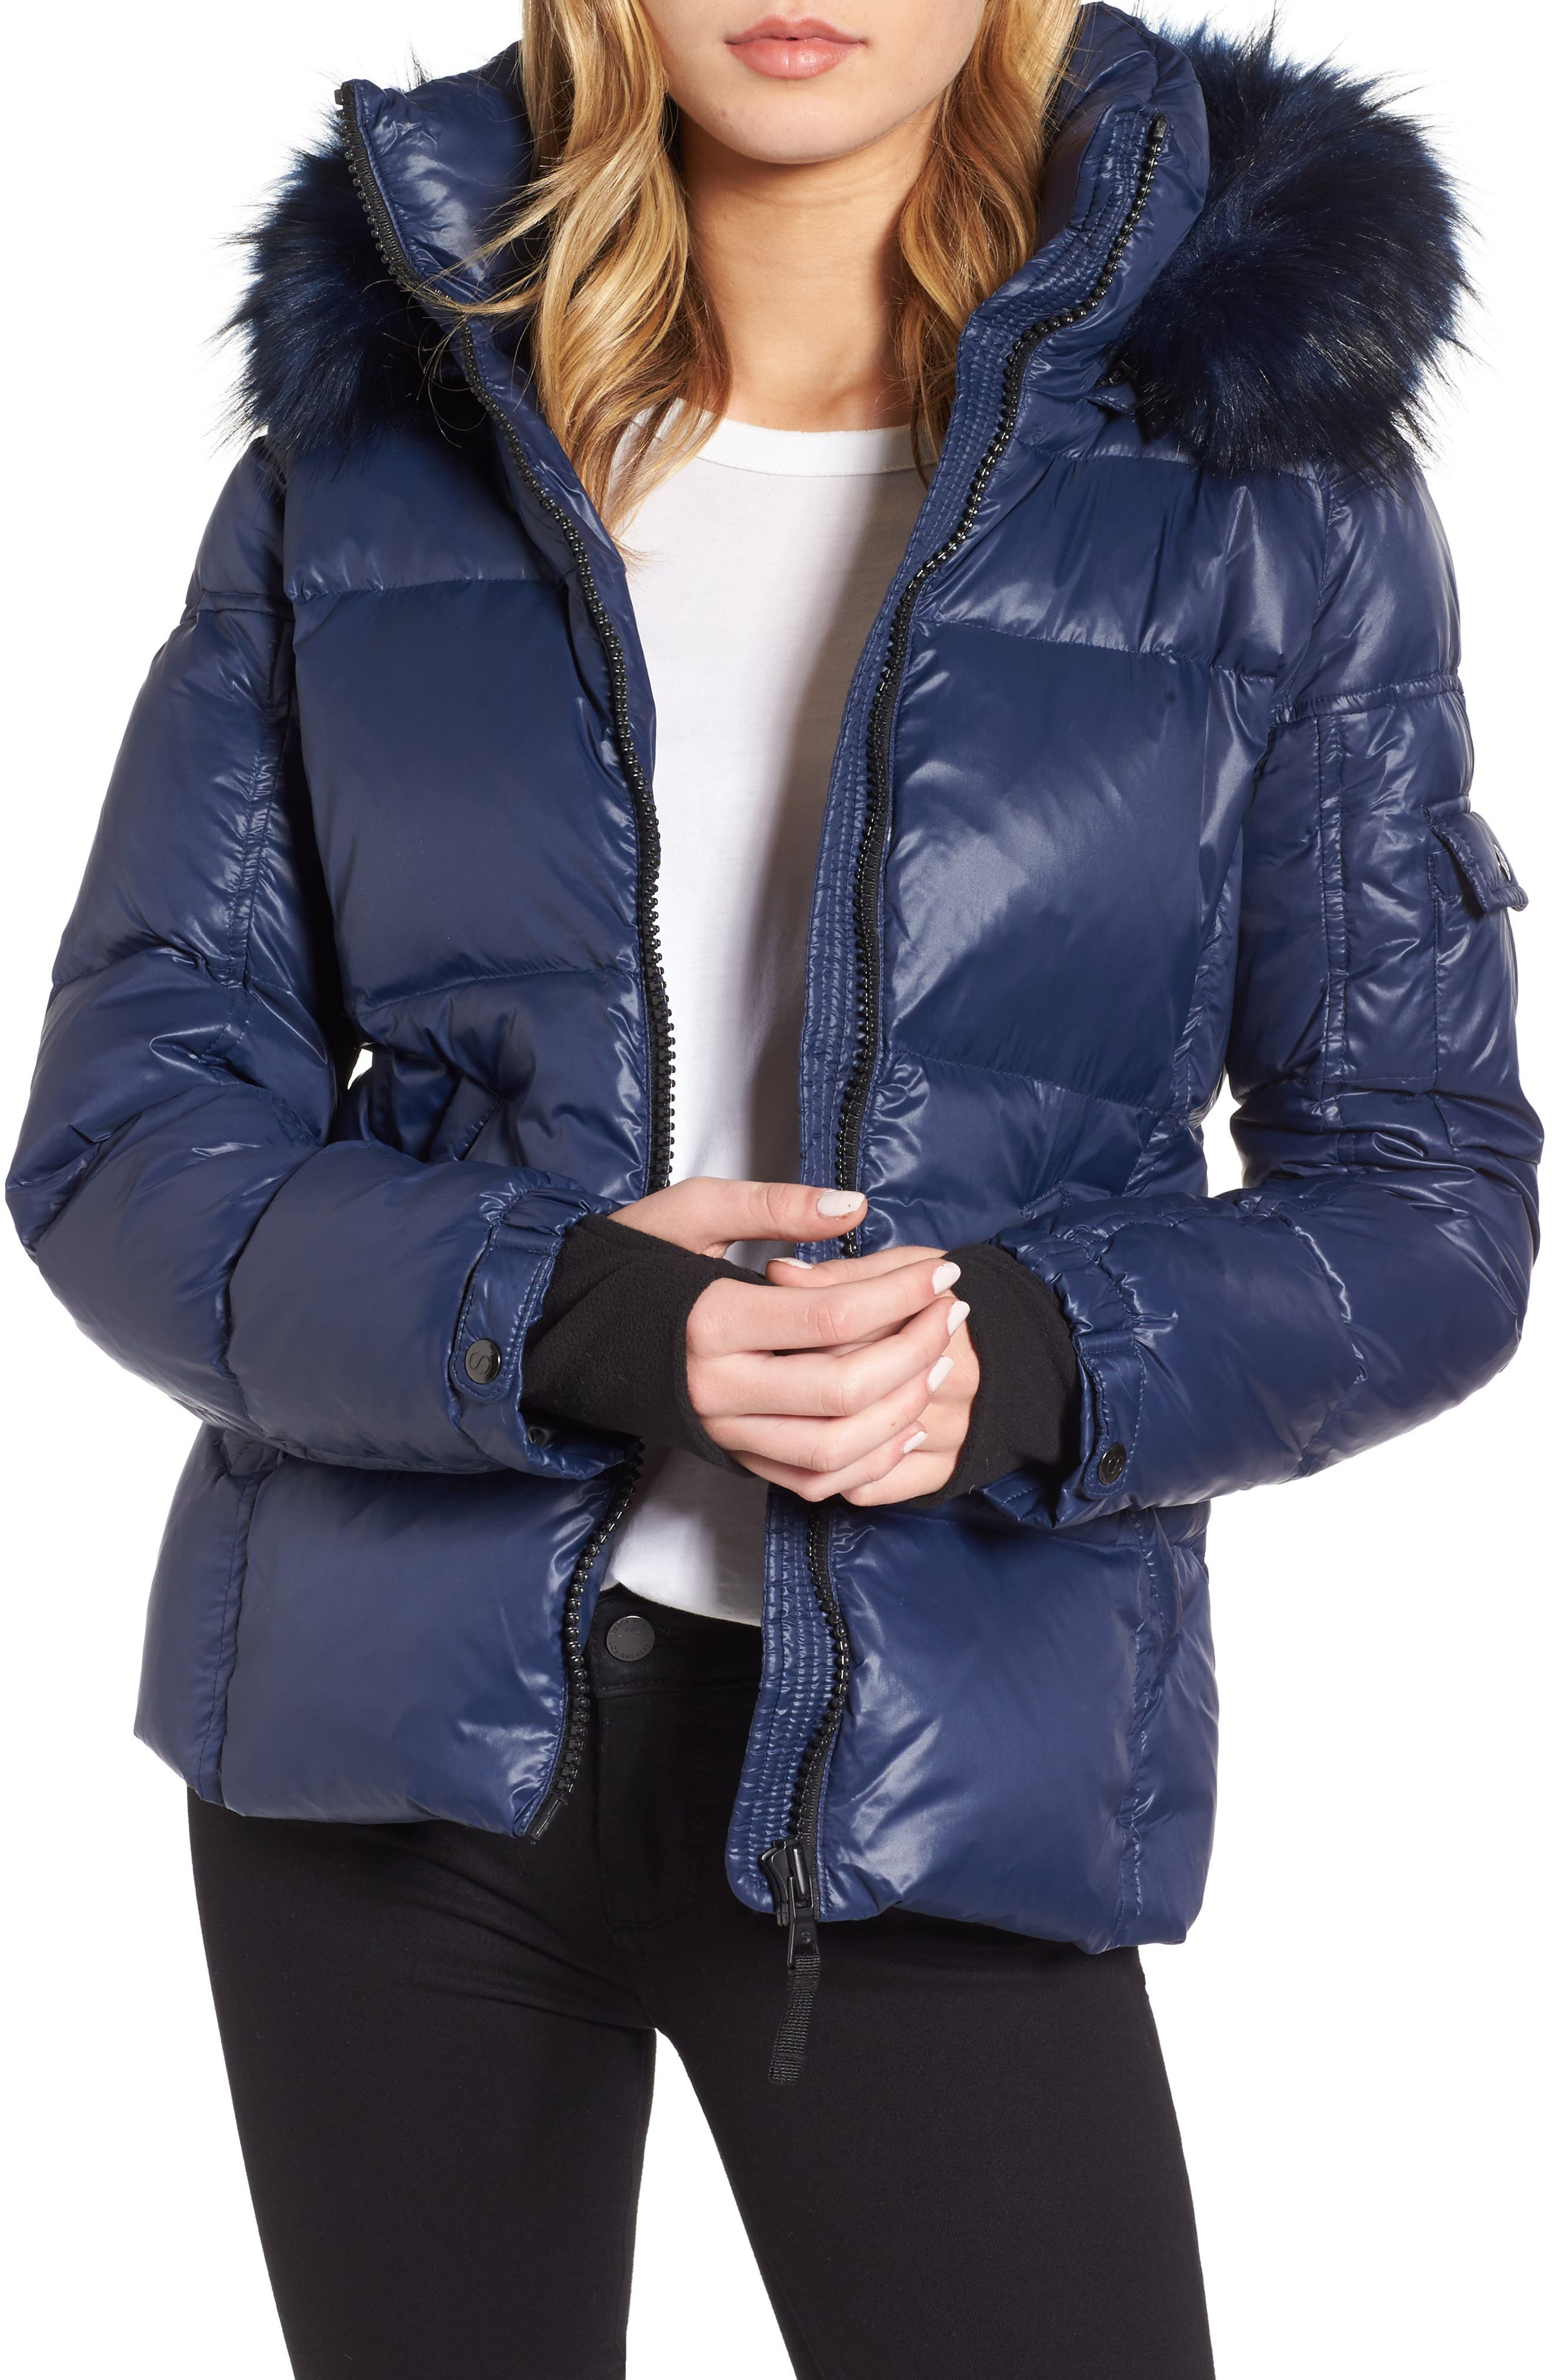 Kylie Faux Fur Trim Gloss Puffer Jacket,                         Main,                         color, Night Blue/ Navy